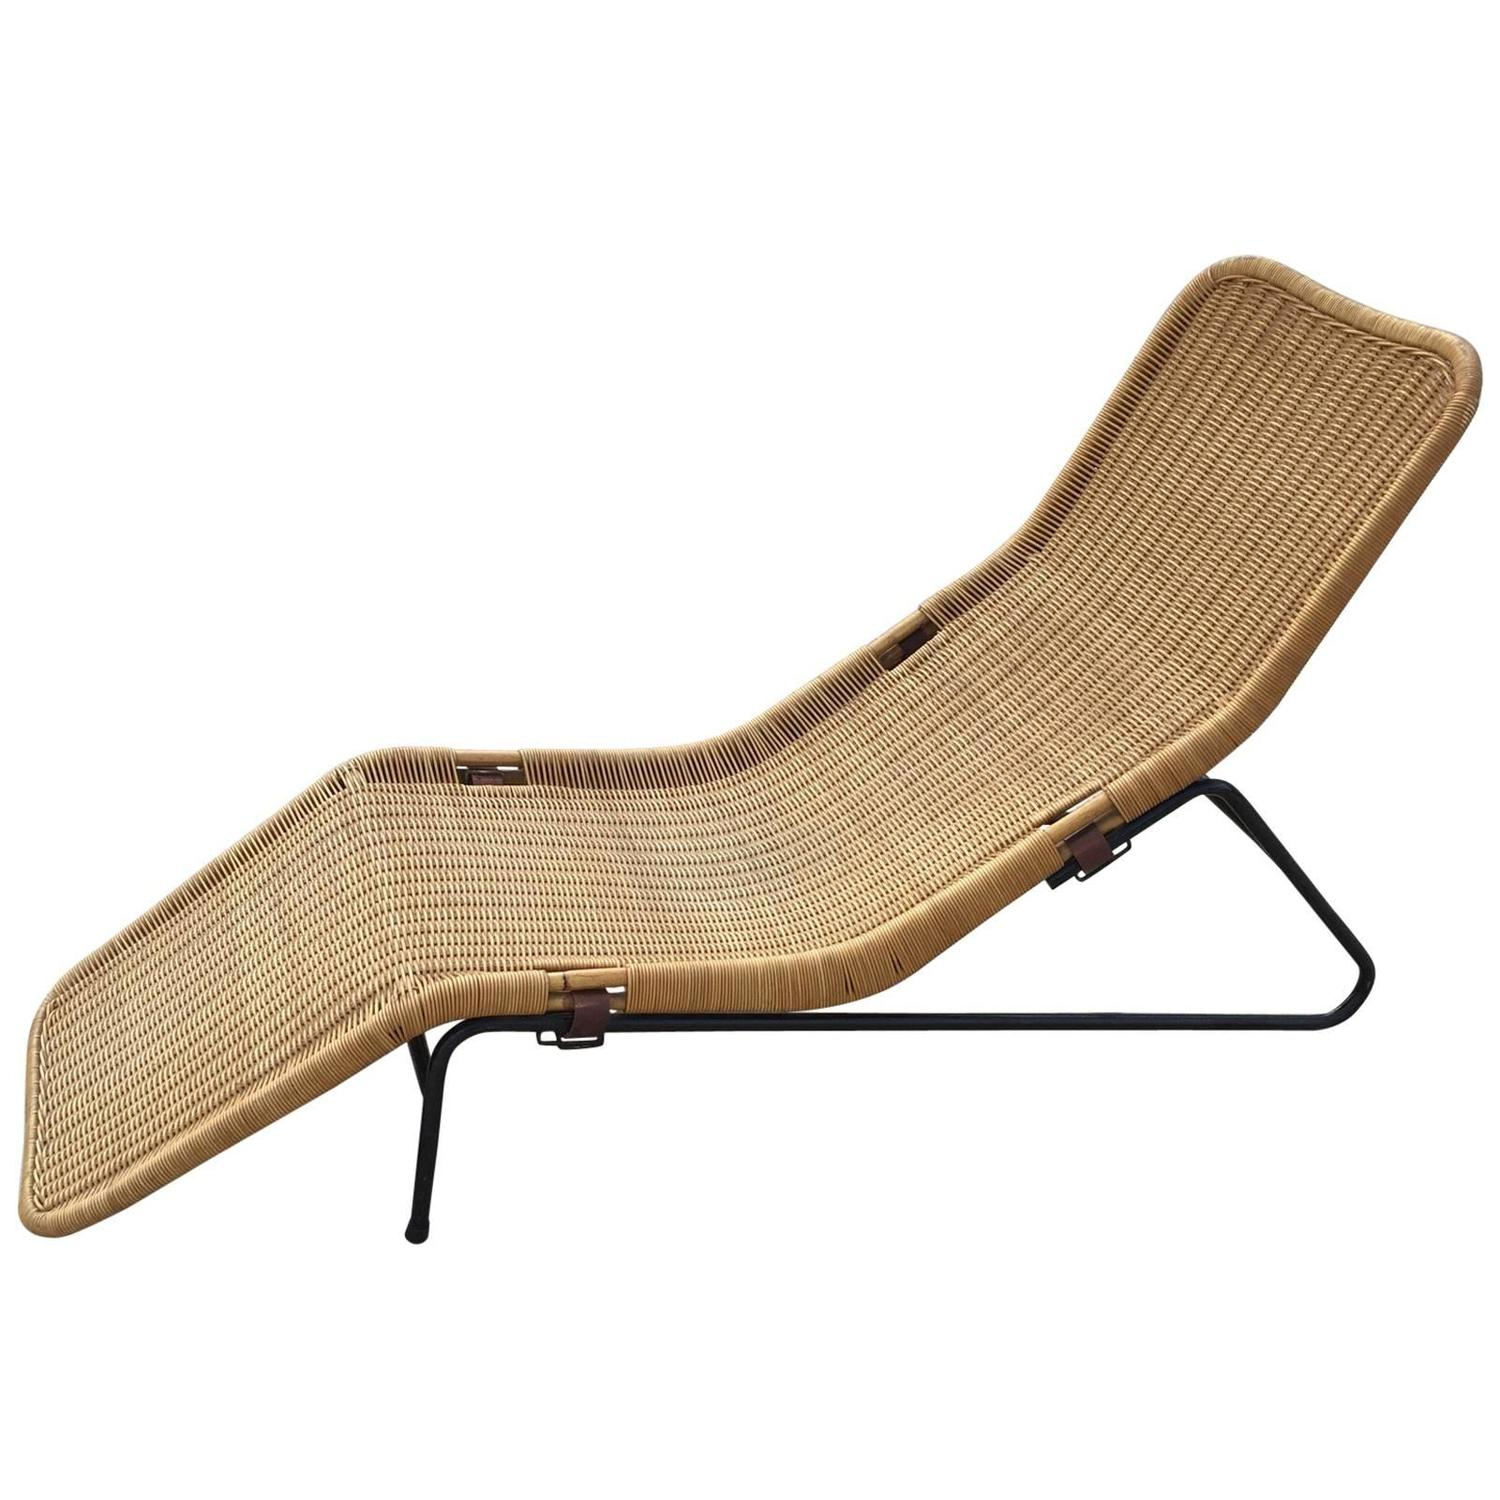 dirk van sliedregt chaise longue in cane for sale at 1stdibs